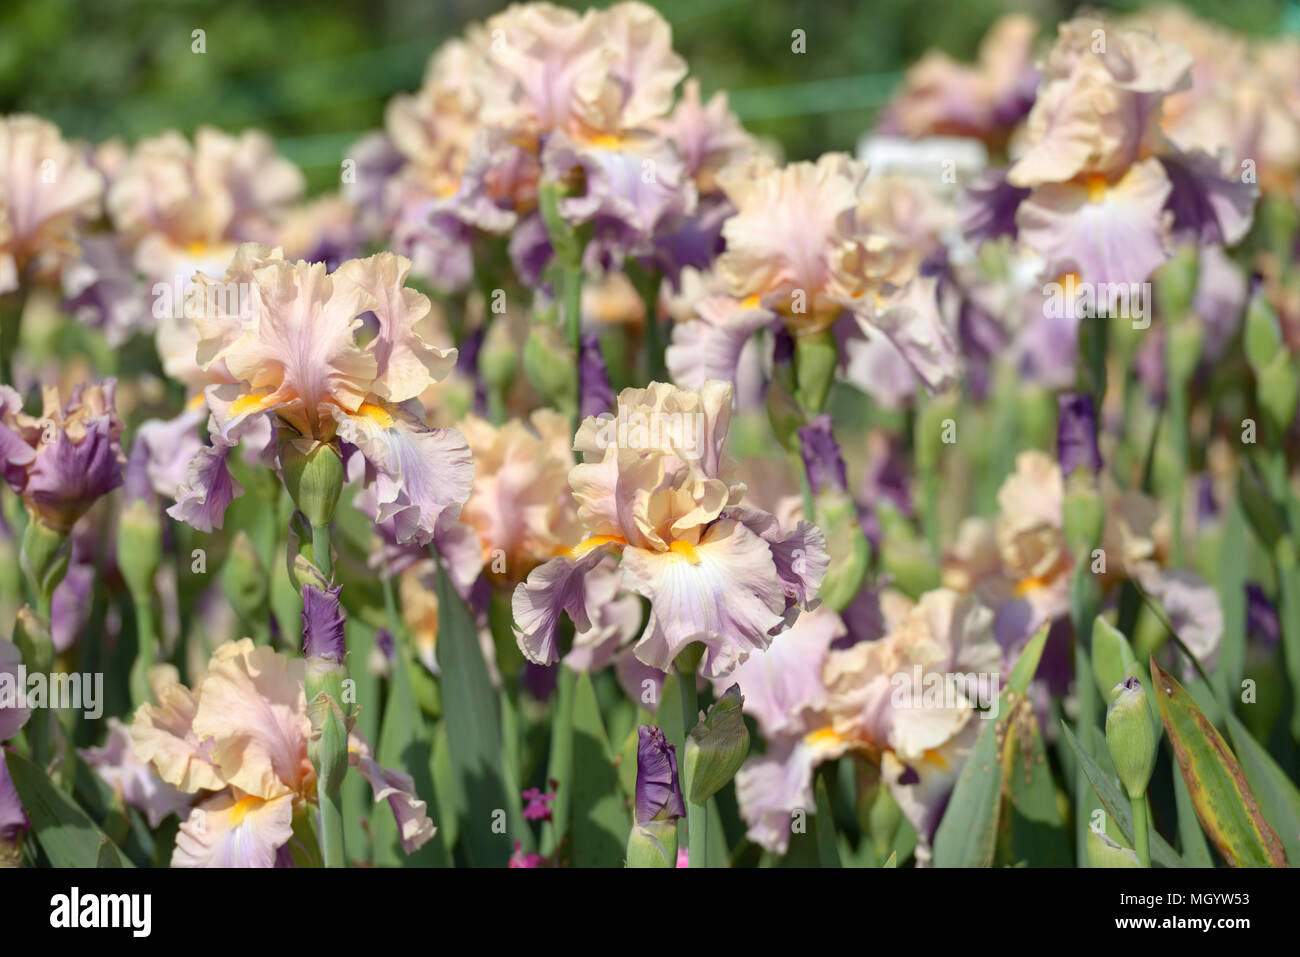 Flowers Of Bearded Iris On A Flower Bed Stock Photo 182550623 Alamy